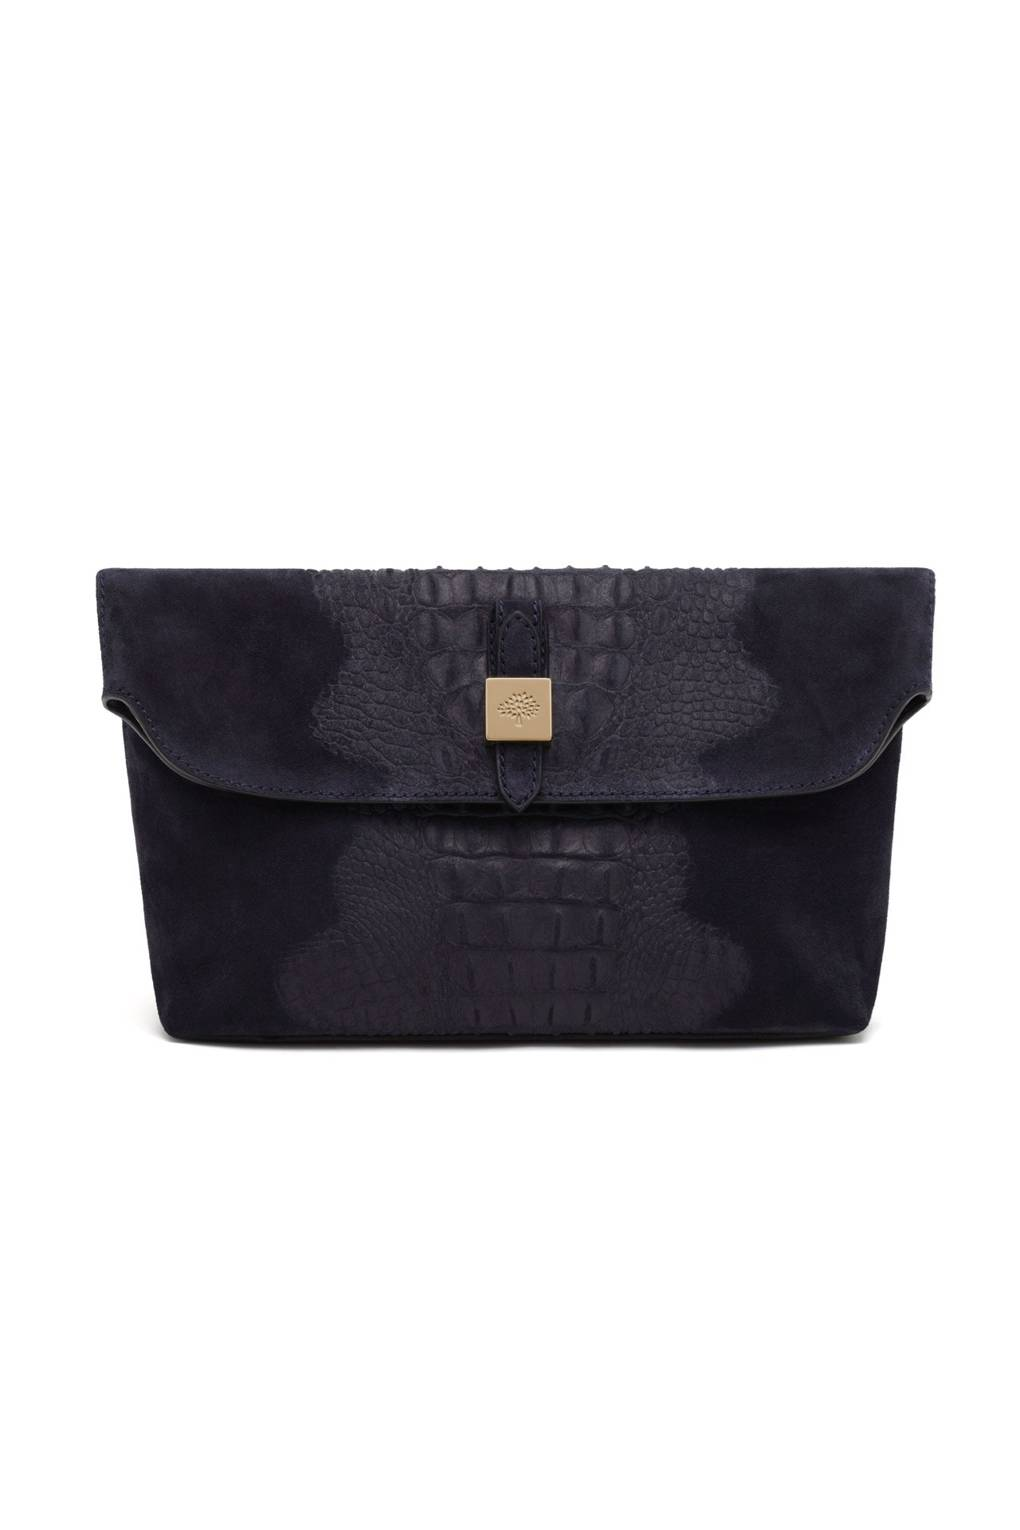 ... discount code for mulberry cheaper bag line the tessie celebrity  fashion celebrity style glamour glamour uk 1c4188d48c521